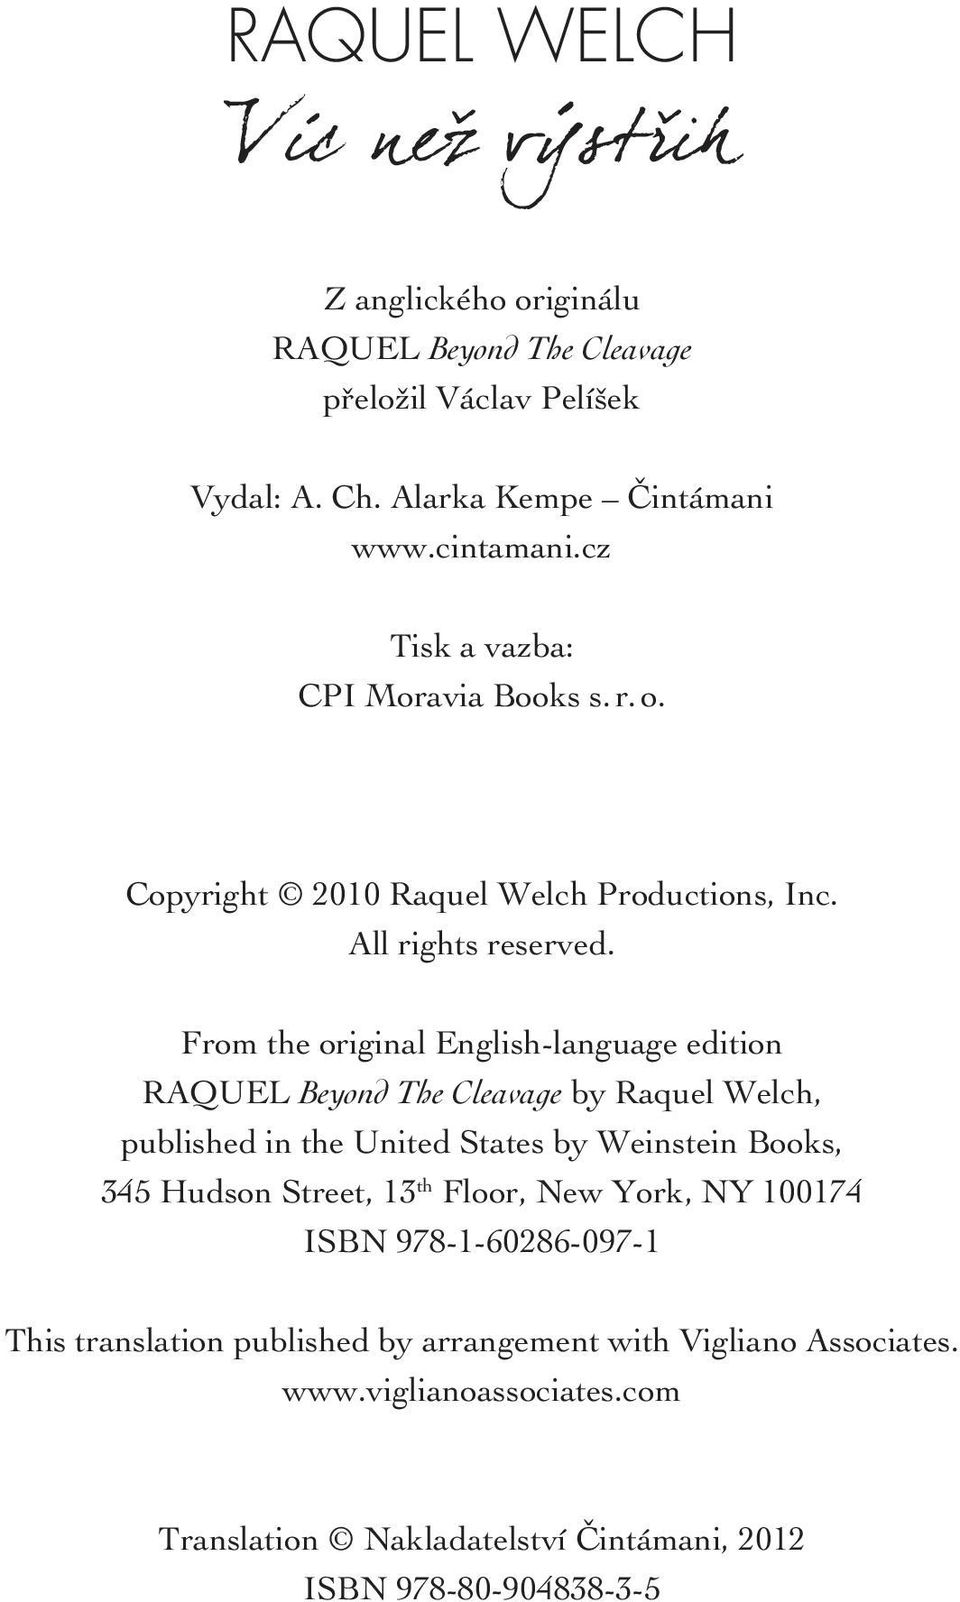 From the original English-language edition RAQUEL Beyond The Cleavage by Raquel Welch, published in the United States by Weinstein Books, 345 Hudson Street, 13